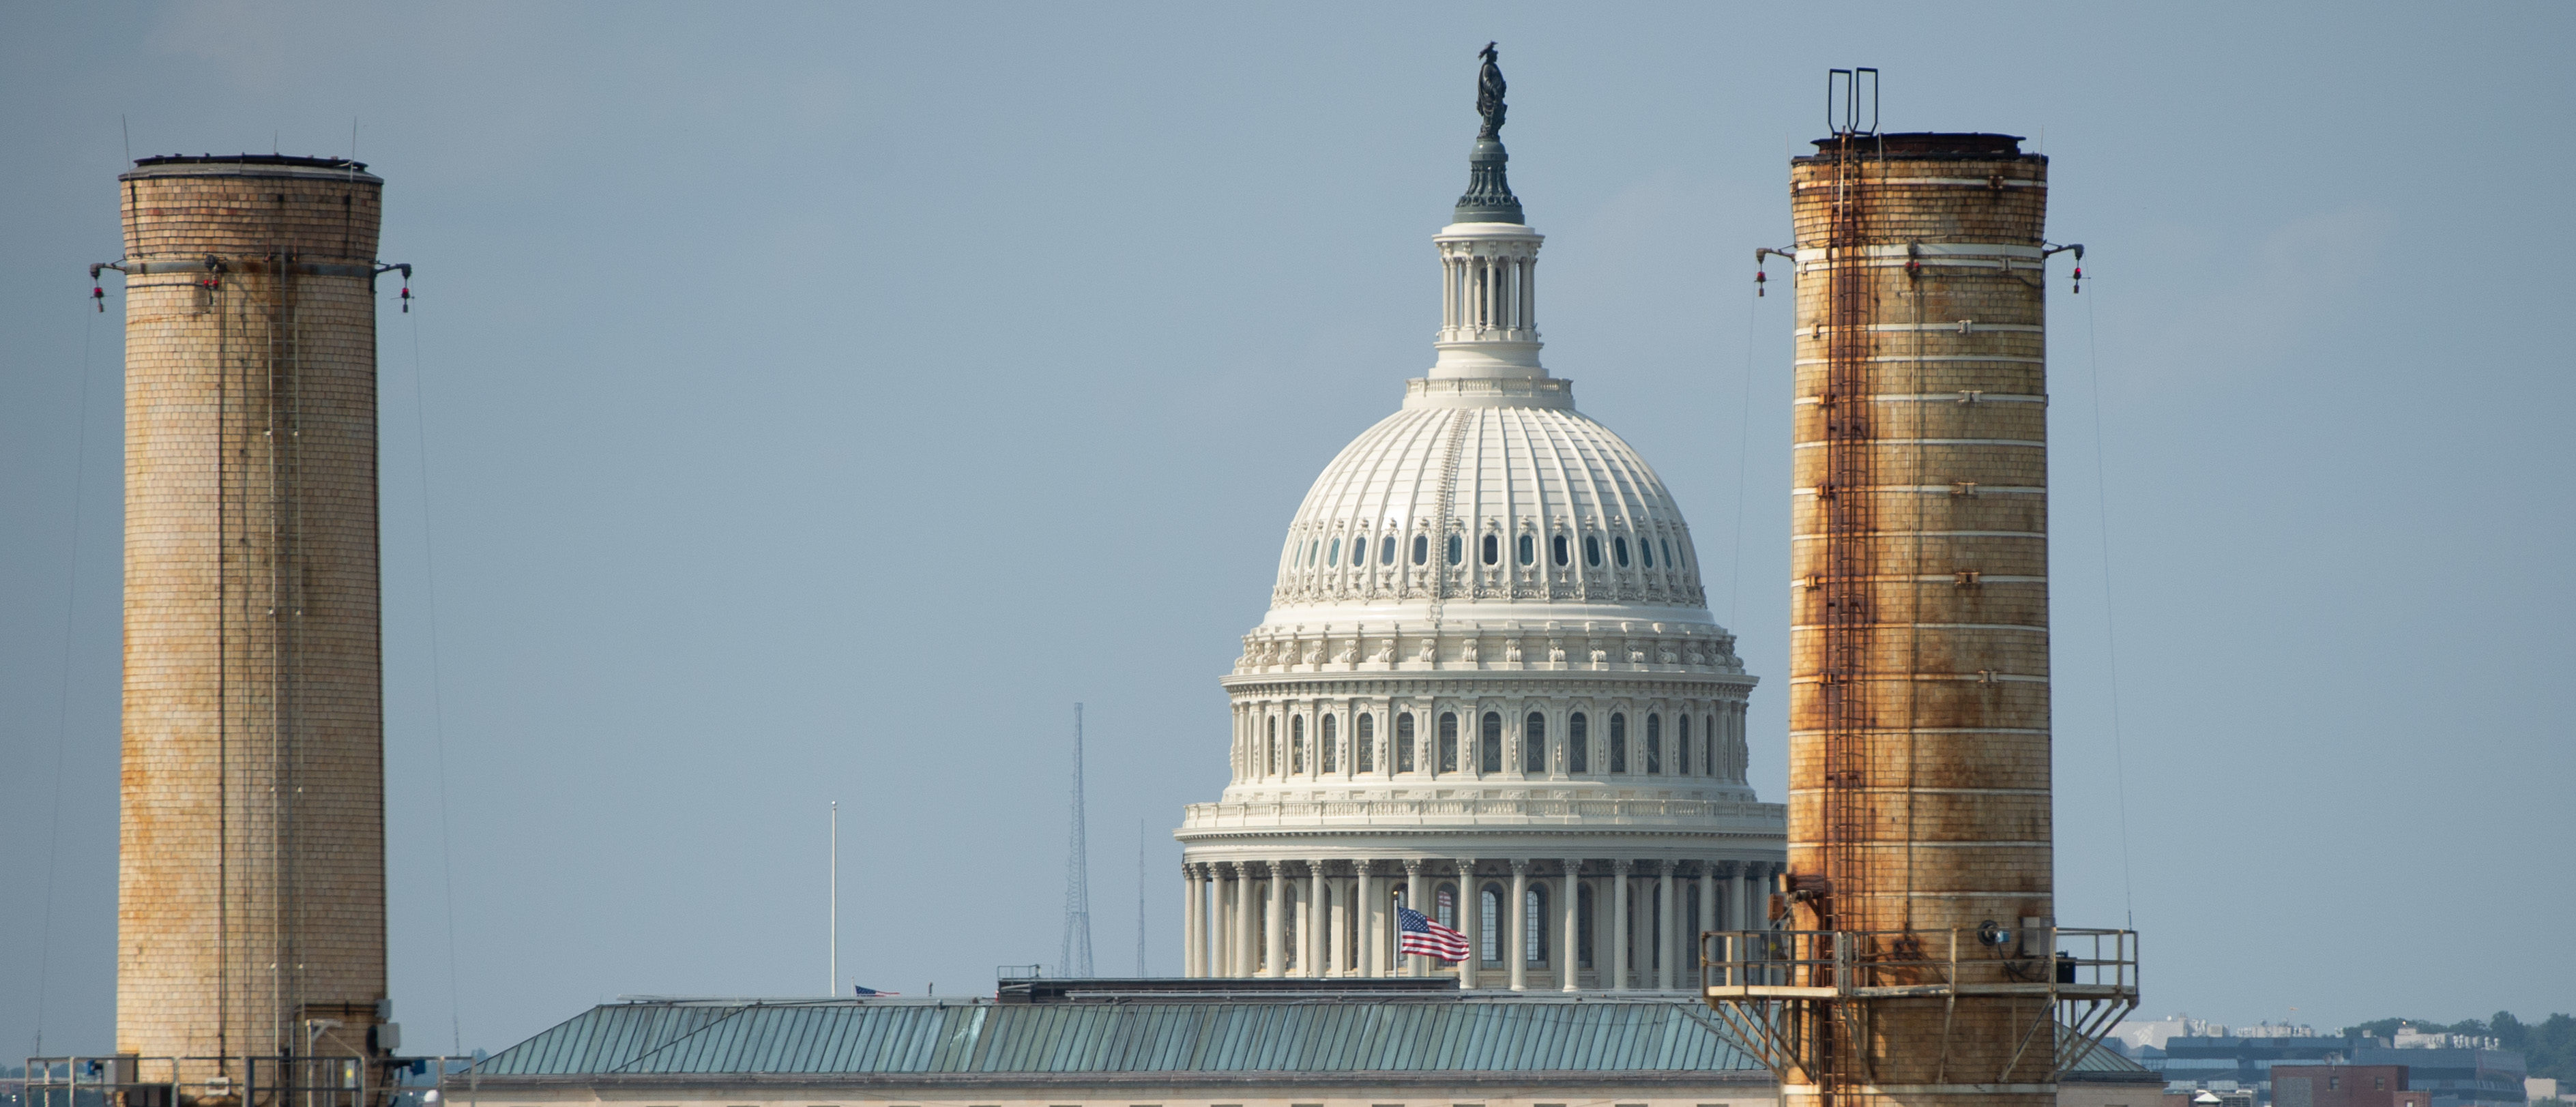 The chimney stacks of the Capitol Power Plant, a natural gas and coal burning power plant that provides steam and chilled water for heating and cooling of the US Capitol and surrounding buildings, is seen near the US Capitol in Washington, DC, August 22, 2018. - US President Donald Trump's administration announced a plan on August 21, 2018, to weaken regulations on US coal plants. The Environmental Protection Agency's new Affordable Clean Energy (ACE) rule would allow states the flexibility to set their own standards for performance at existing coal-fired power plants, rather than follow a single federal standard. (Photo by SAUL LOEB / AFP) (Photo credit should read SAUL LOEB/AFP/Getty Images)